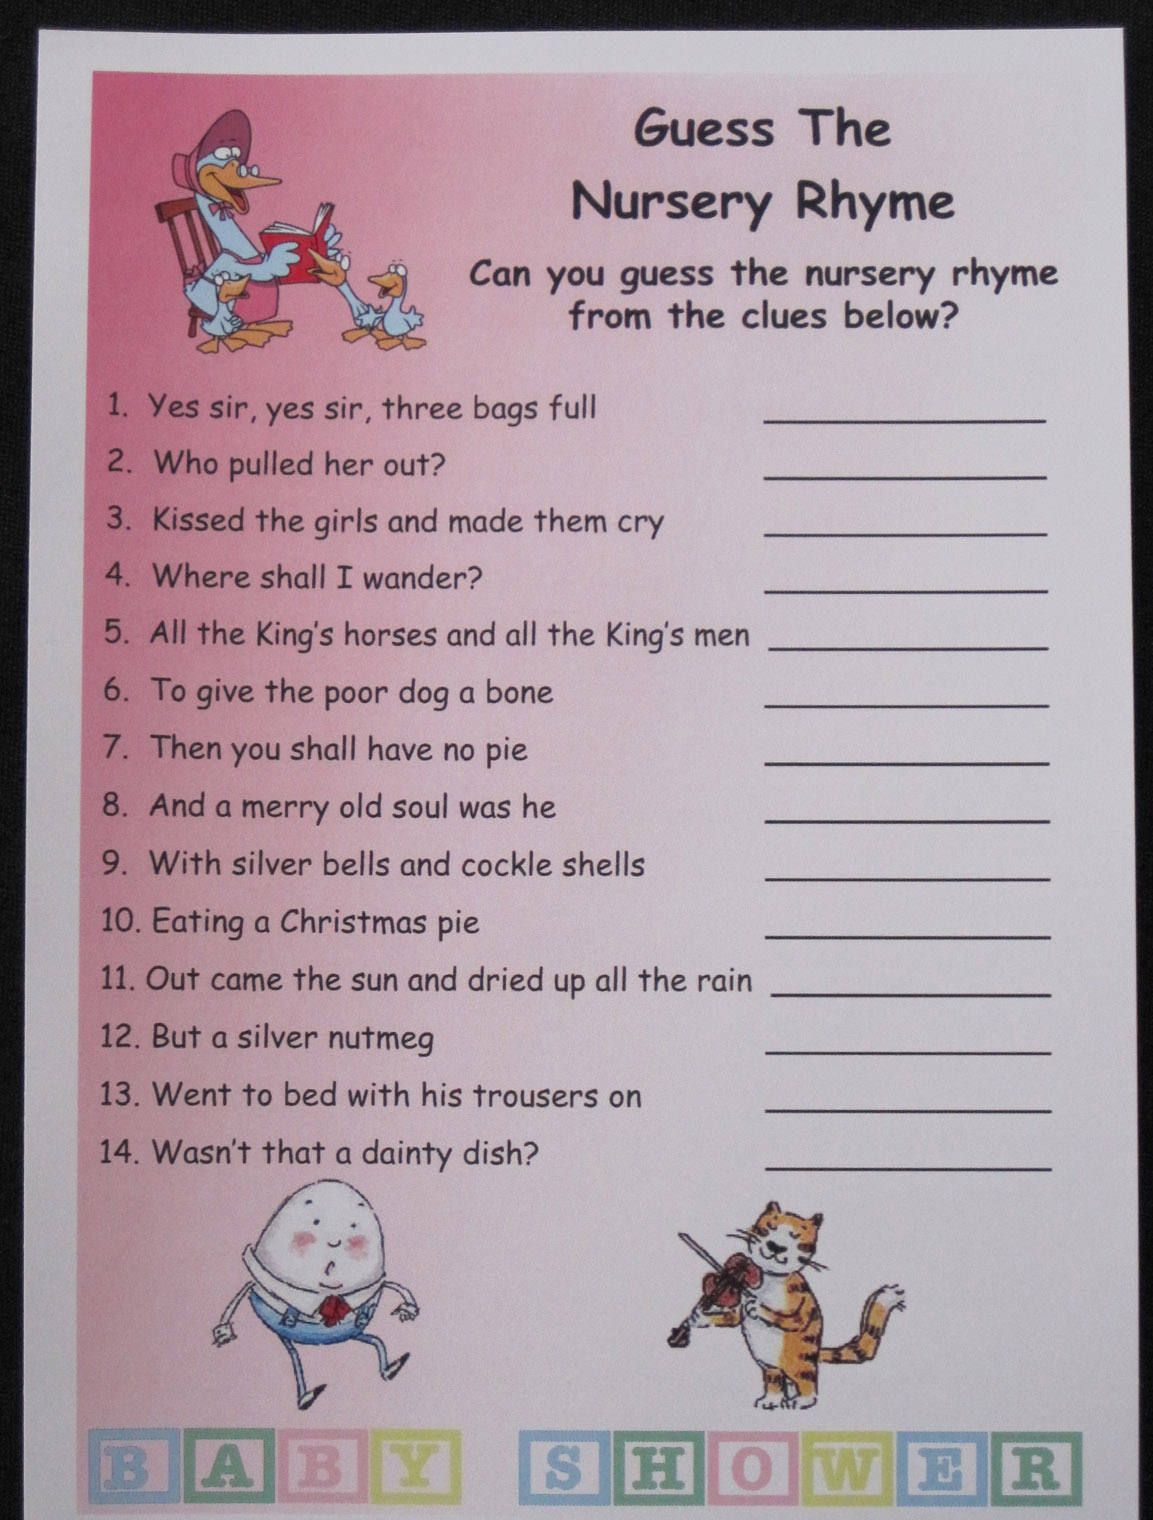 Baby Shower Games Guess The Nursery Rhyme Pink Printable